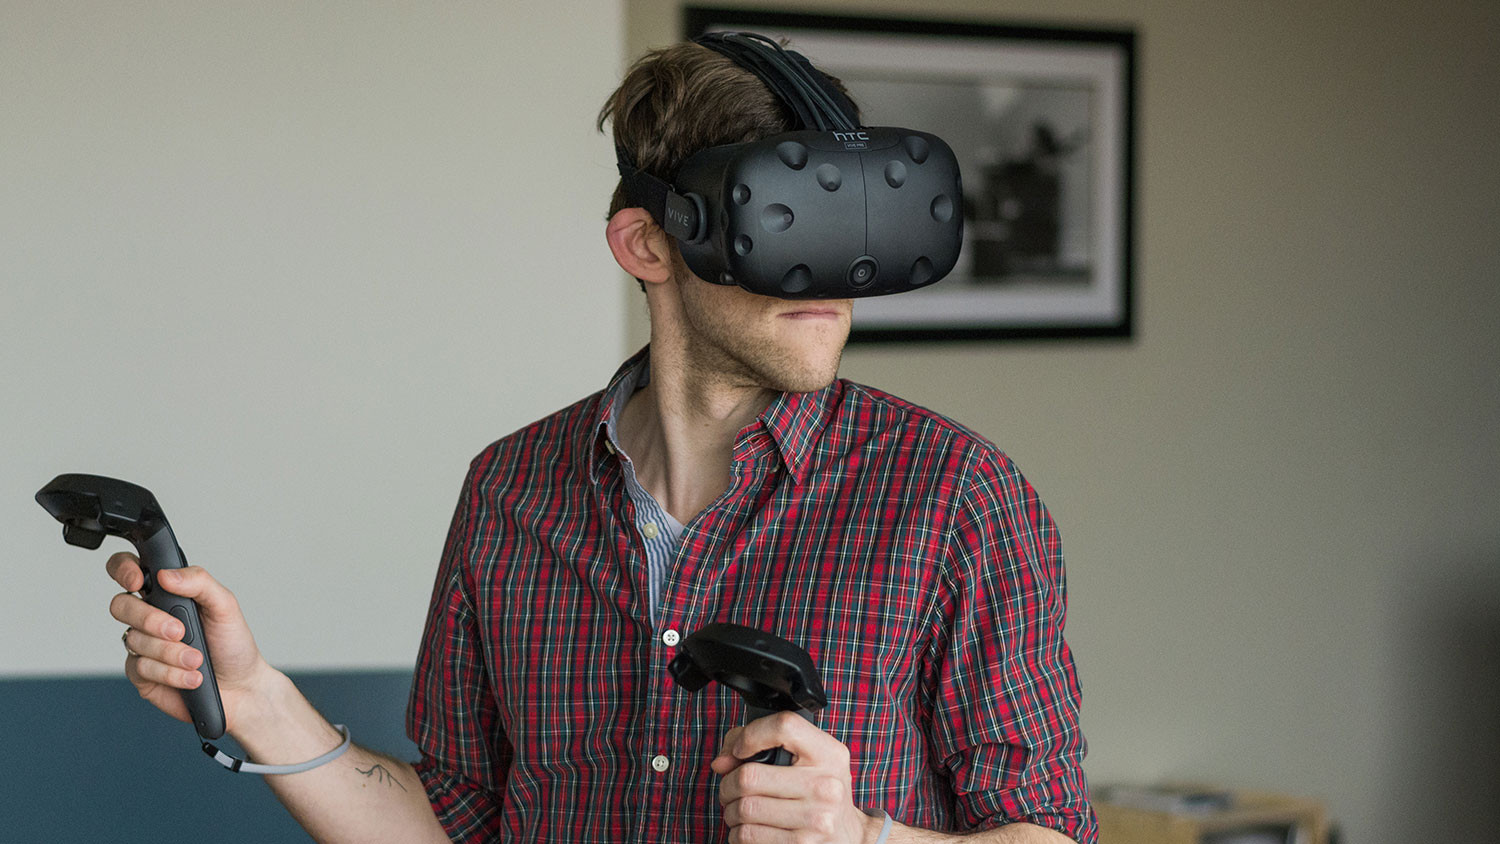 Oculus Home is sabotaging the Rift while HTC's Vive steams ahead